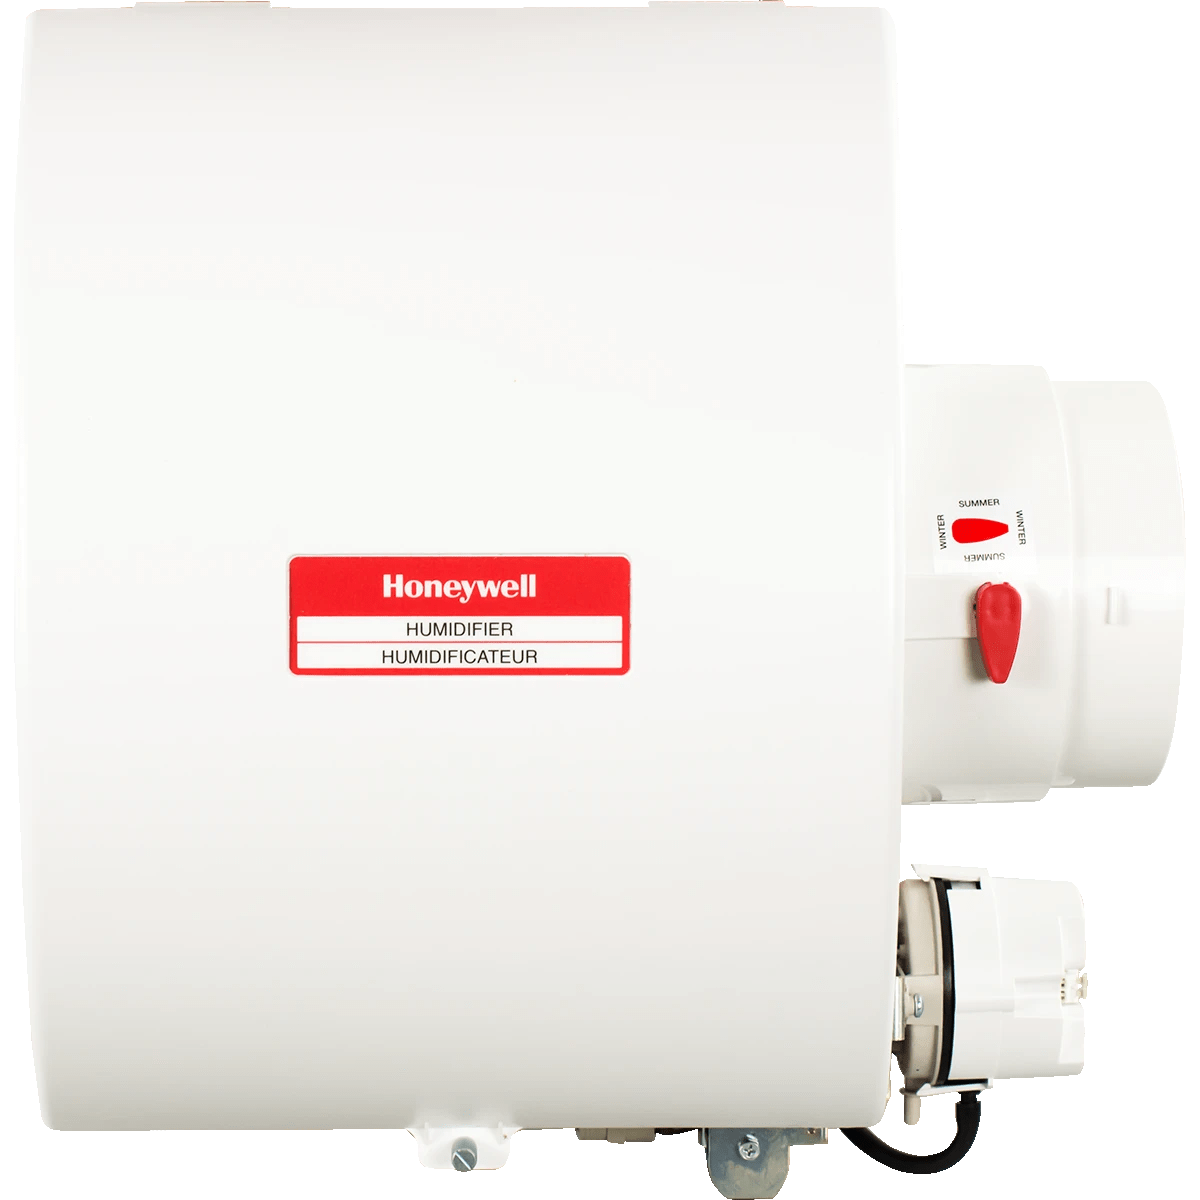 honeywell he260 humidifier wiring diagram freightliner mt45 he240 he280 diy whole house do